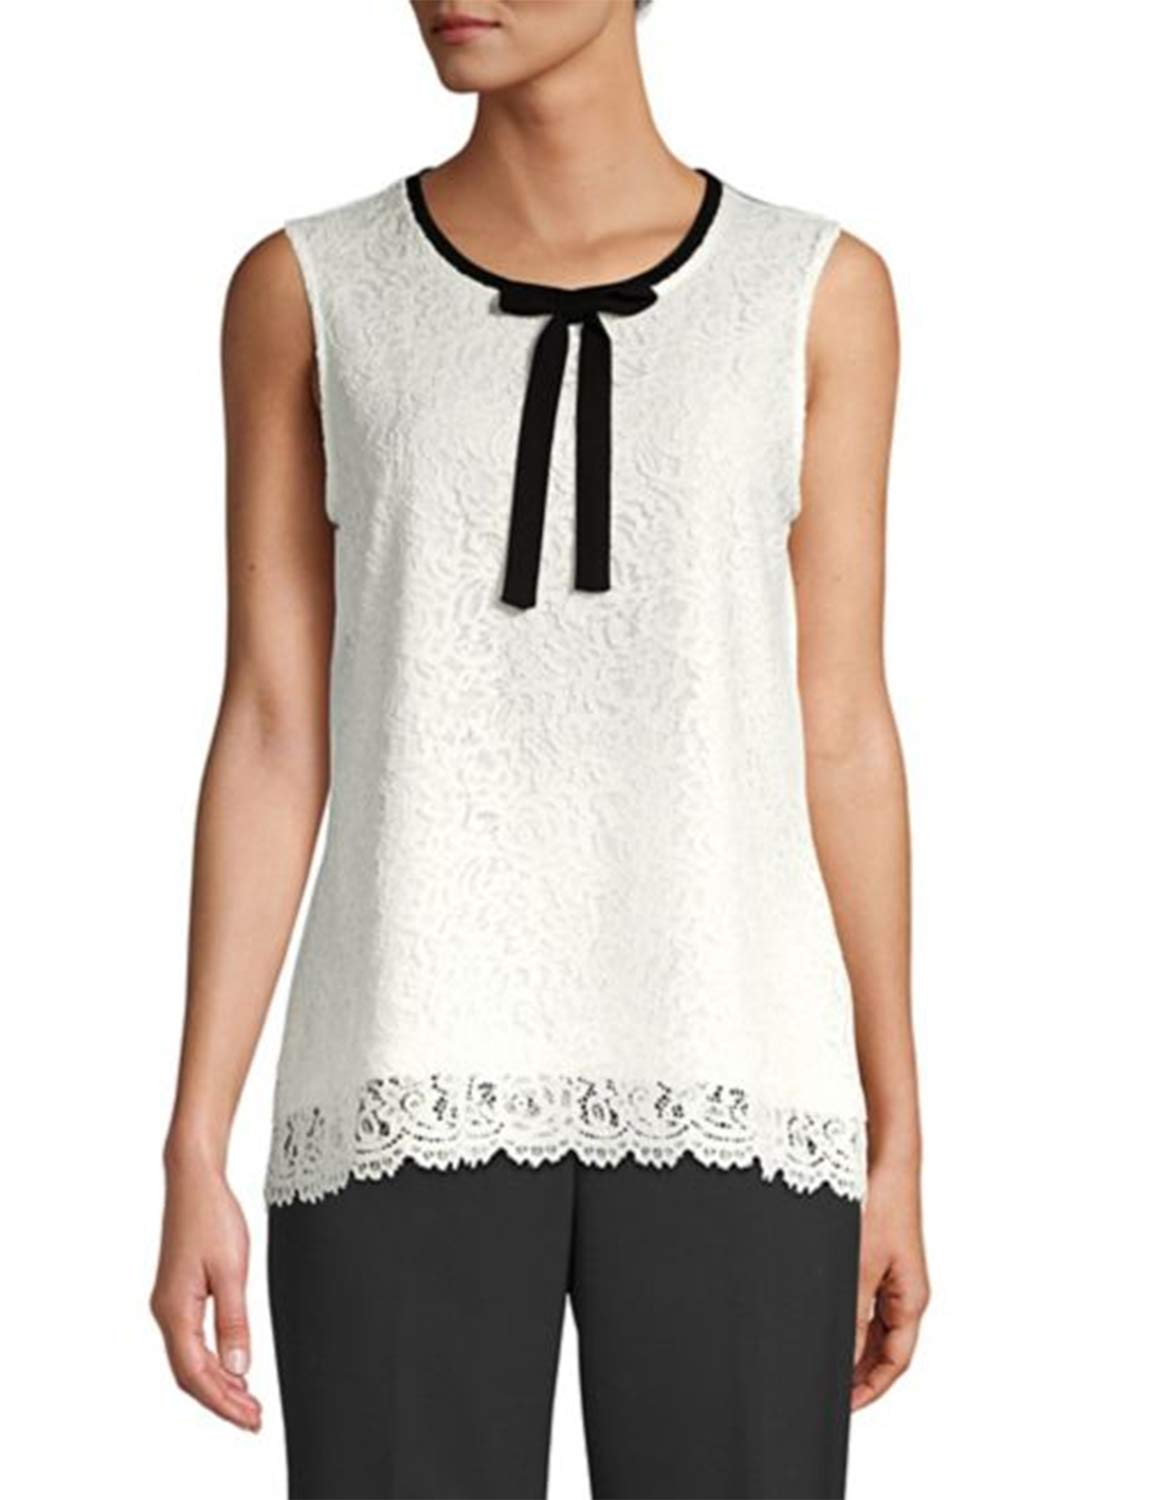 97e112519 85% discount on Blooming Jelly Womens Lace Top Tie Front Tops ...